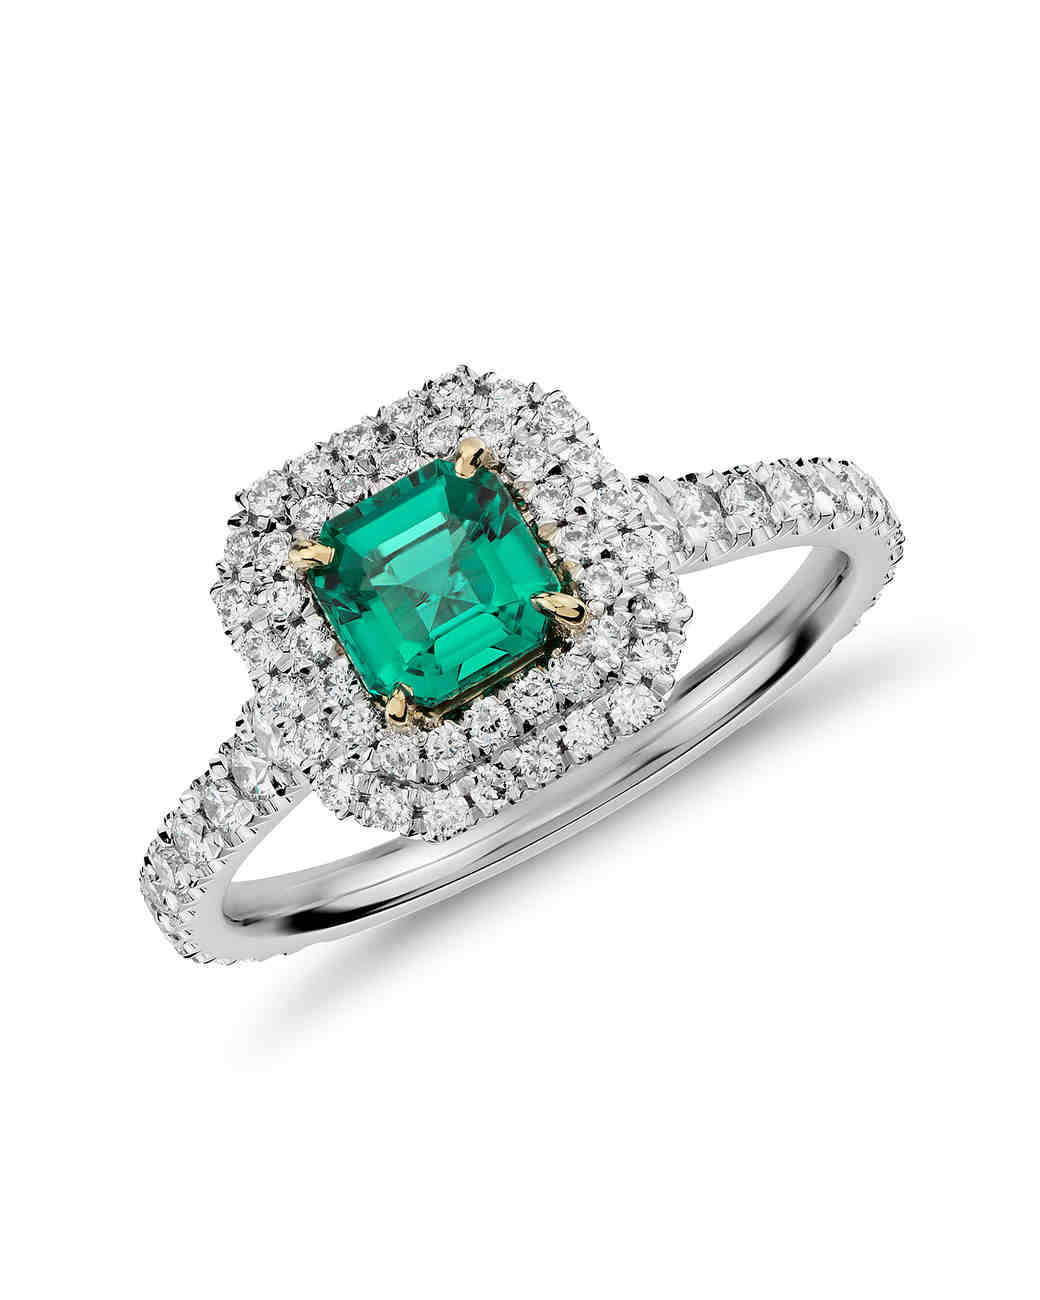 70 colored engagement rings we love | martha stewart weddings